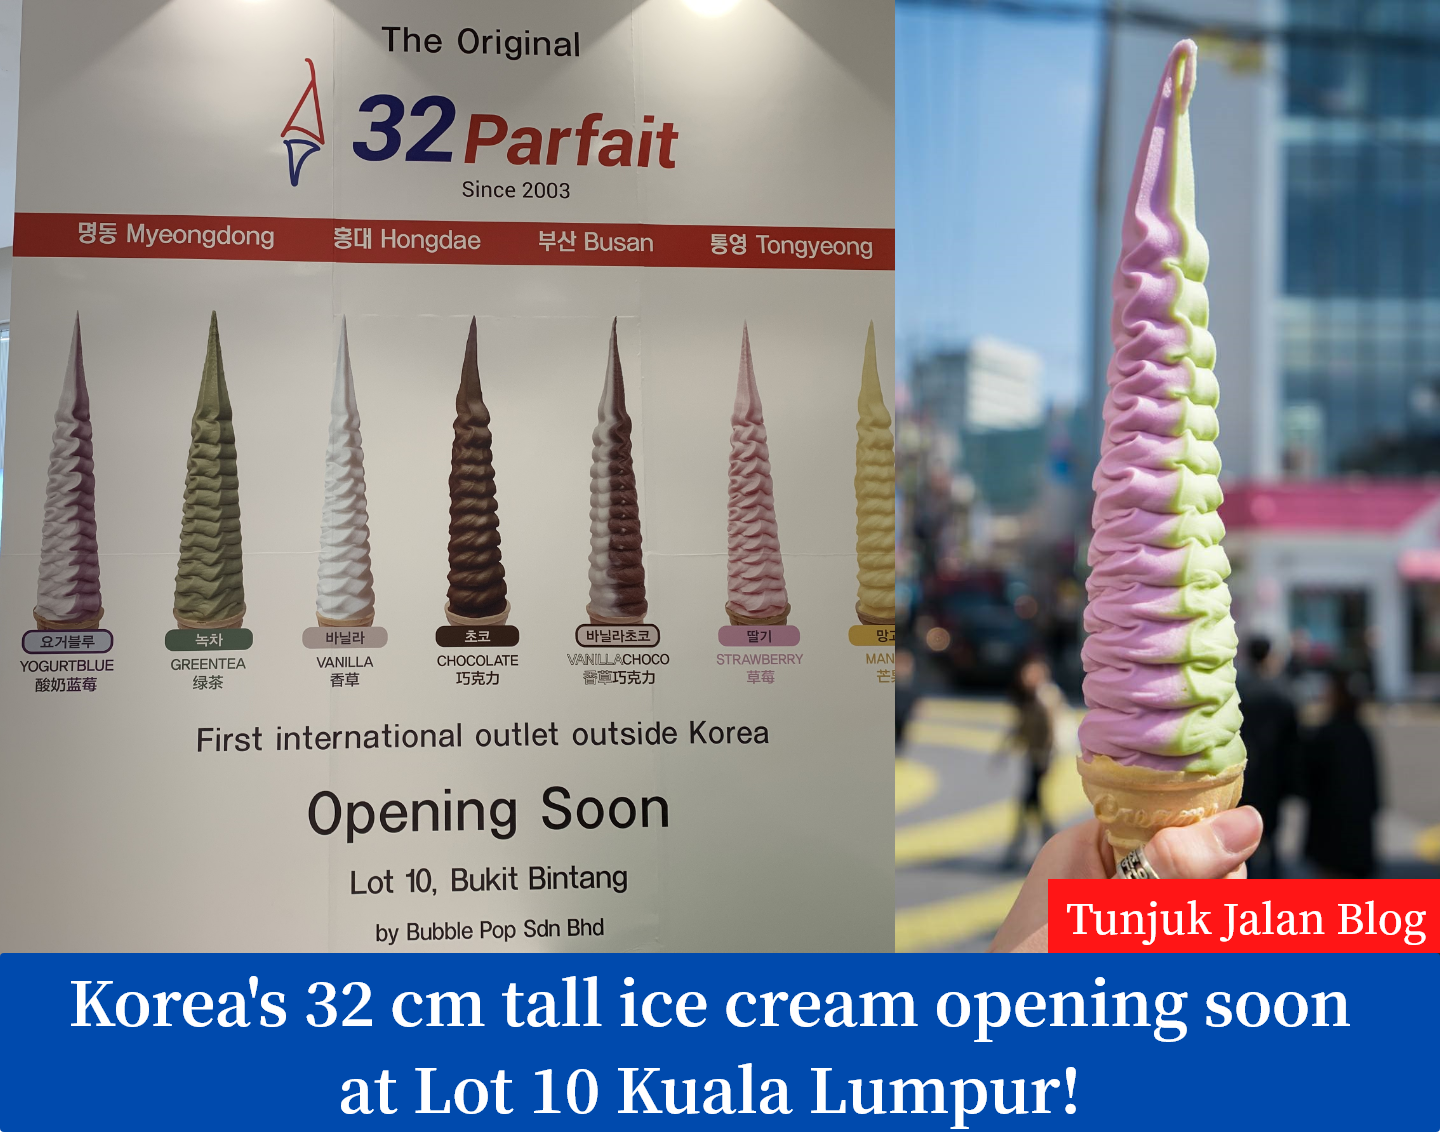 Super tall ice cream parfait from Korea is opening its 1st international outlet at Malaysia